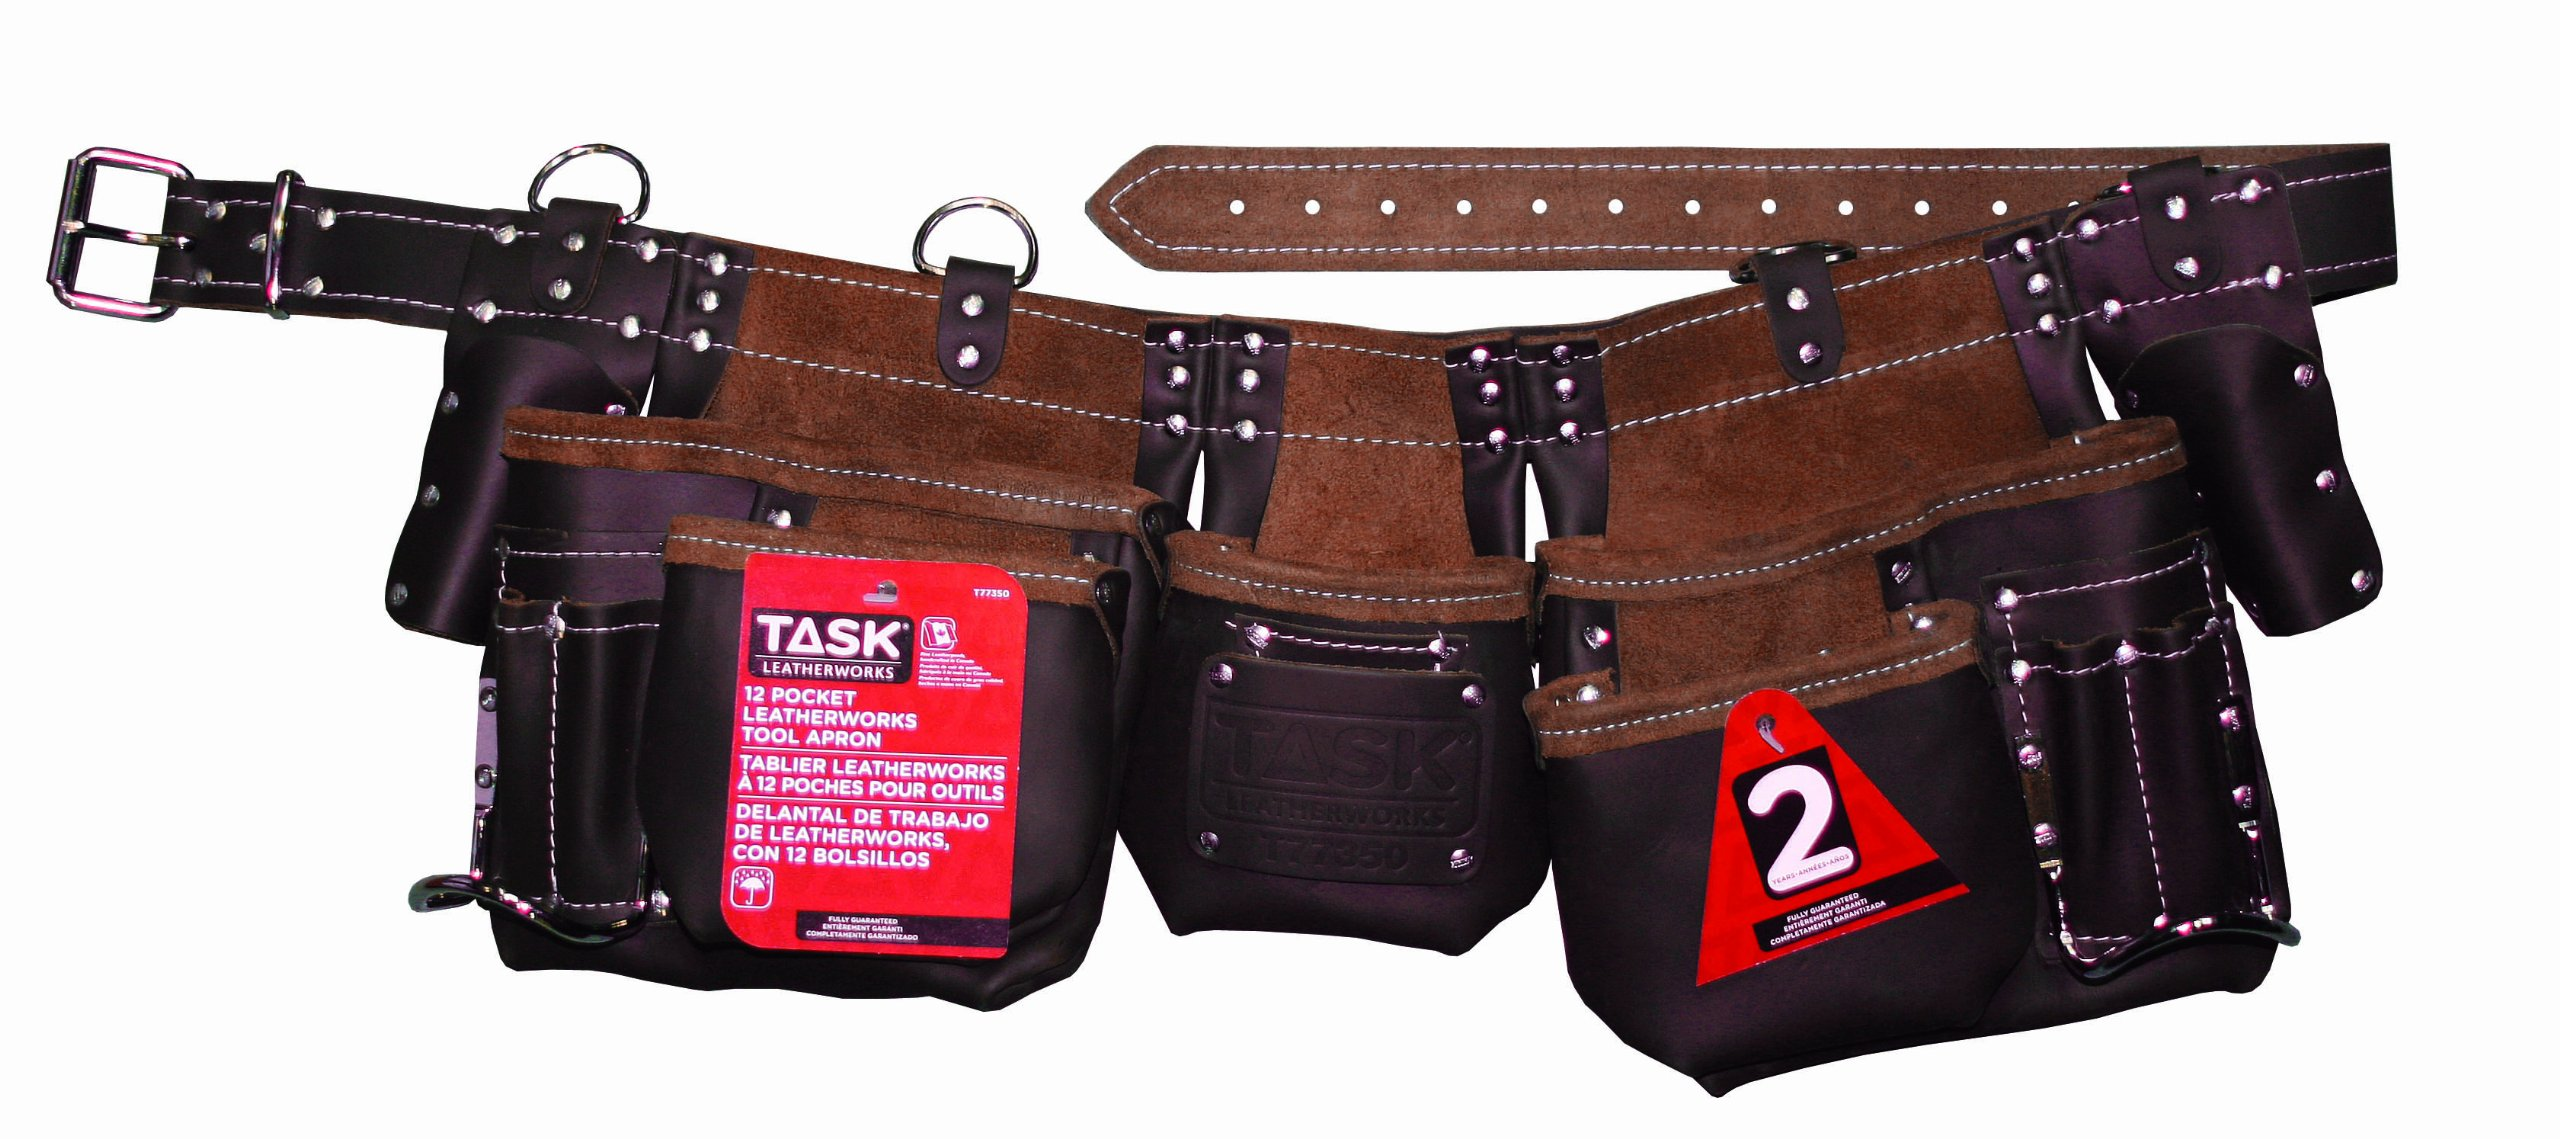 Task Tools T77350 Master Carpenter's Apron, 12-Pocket